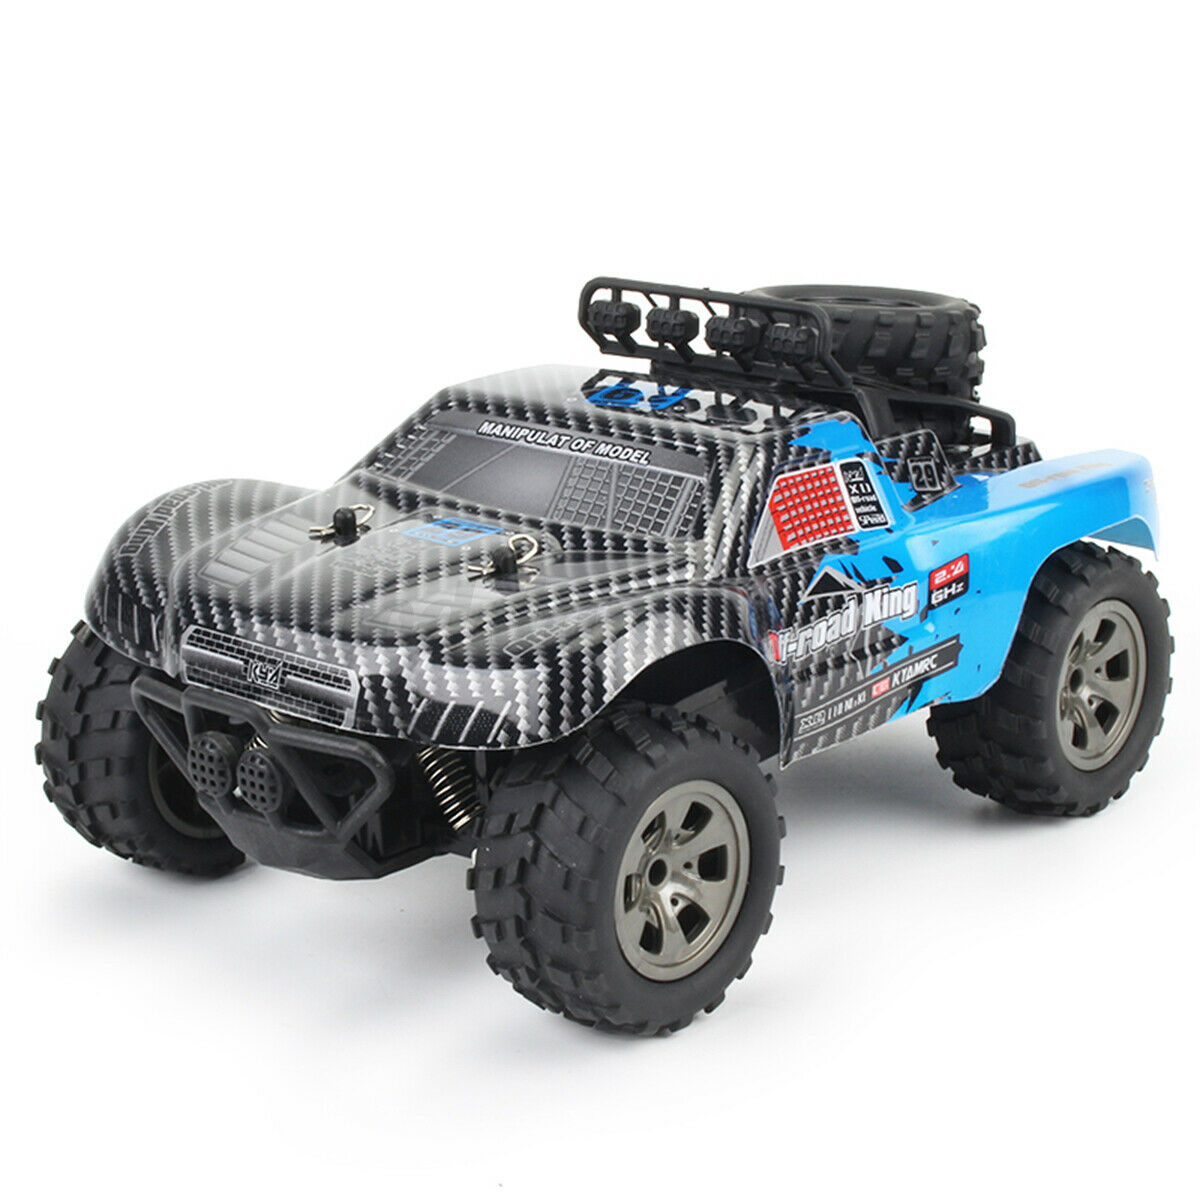 TRUCKZI RC Monster Truck 2.4 Ghz High Speed Remote Control Off-Road - Shoplexcity